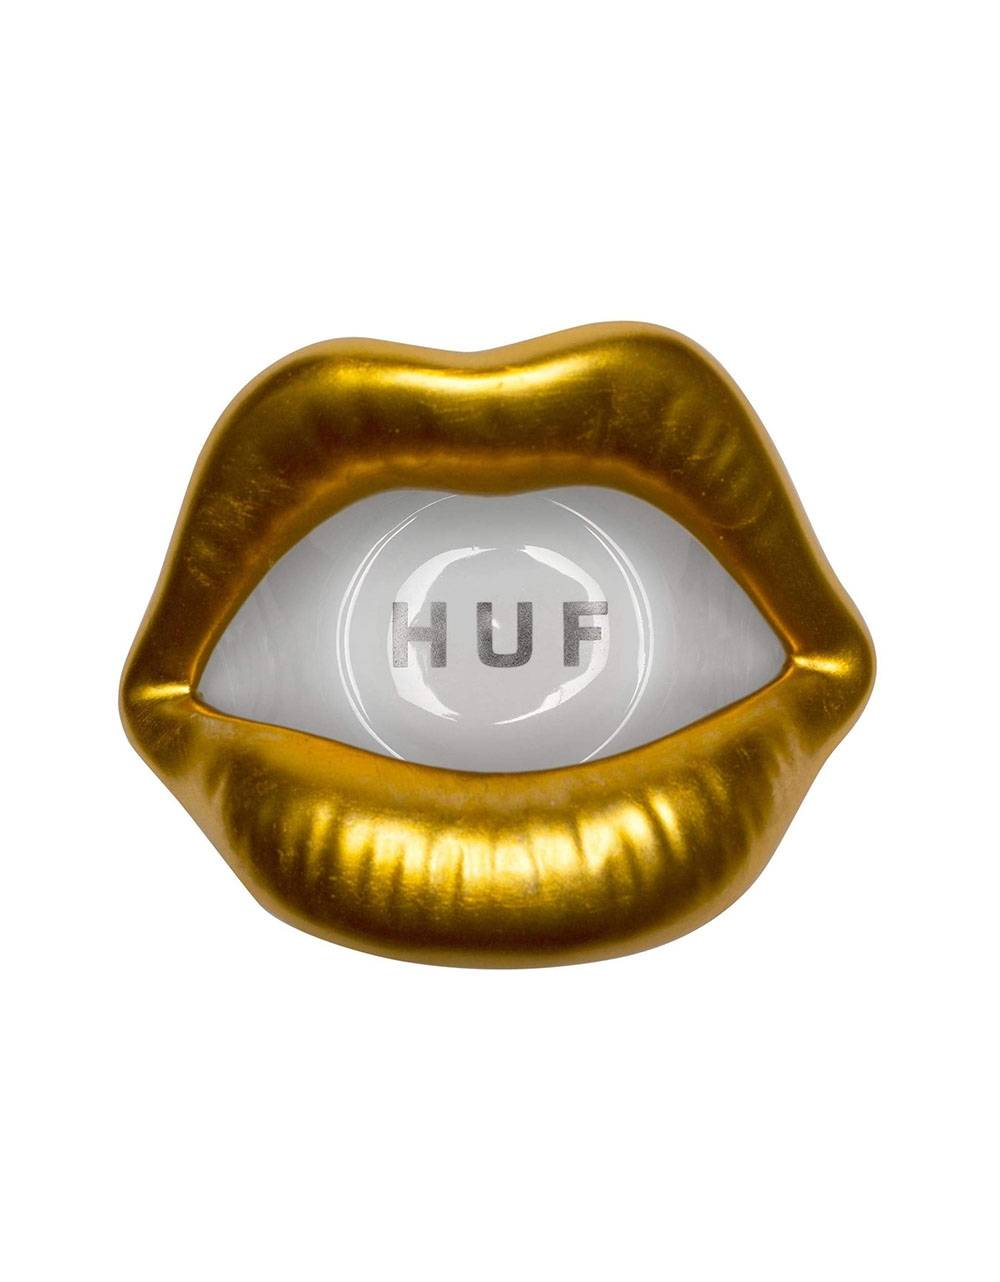 Huf Lips ashtray - gold Huf ACCESSORIES 36,89 €